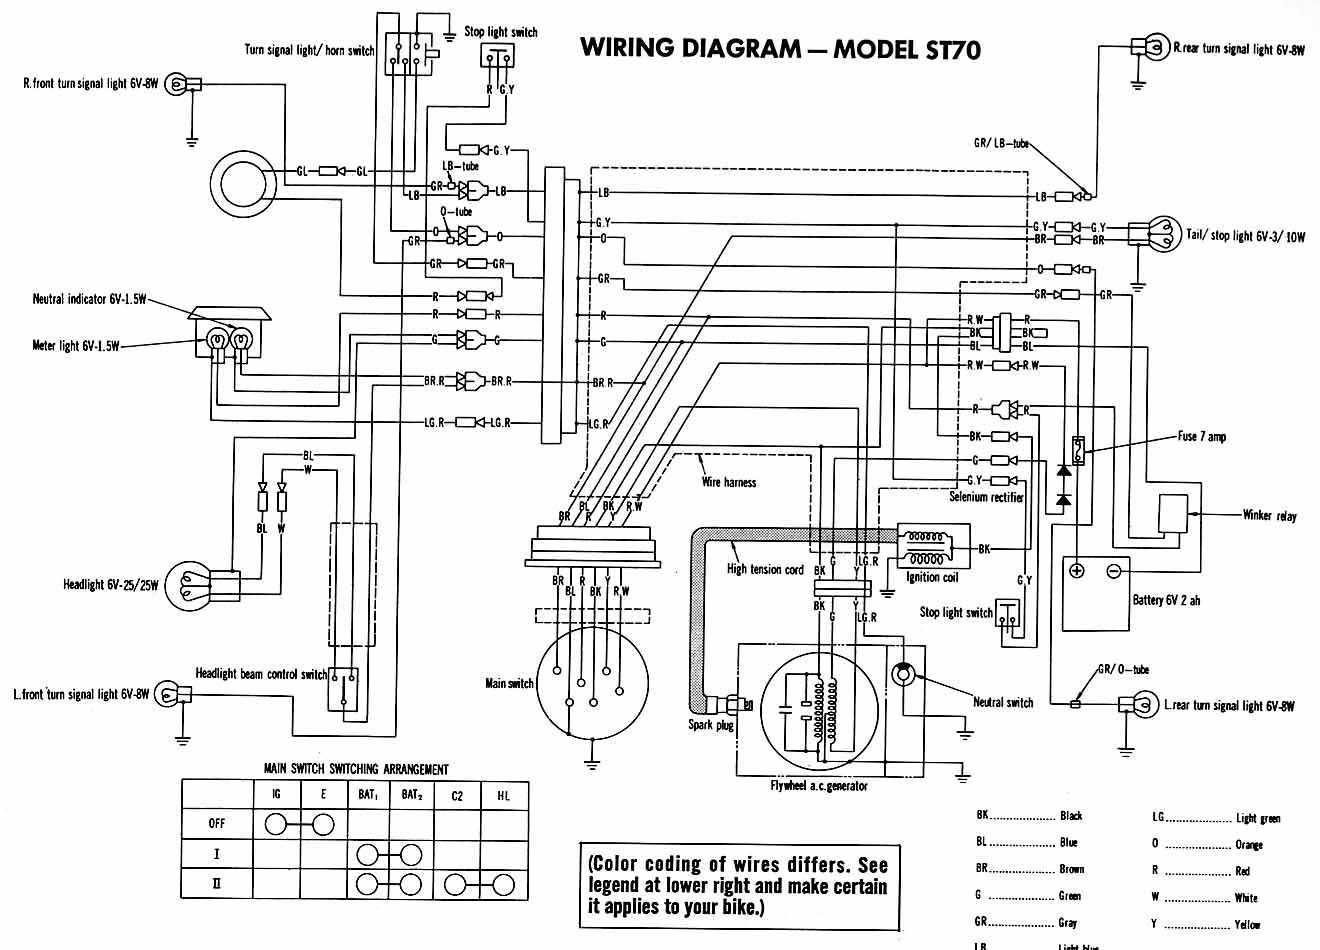 Ignition Toggle With Push Button Start in addition Honda Gx390 Wiring Diagram furthermore Honda Gx390 Electric Start Wiring Diagram as well Honda Foreman 400 Parts Diagram Hoses further 56 20Chevy 20index. on honda gx390 engine wiring diagram